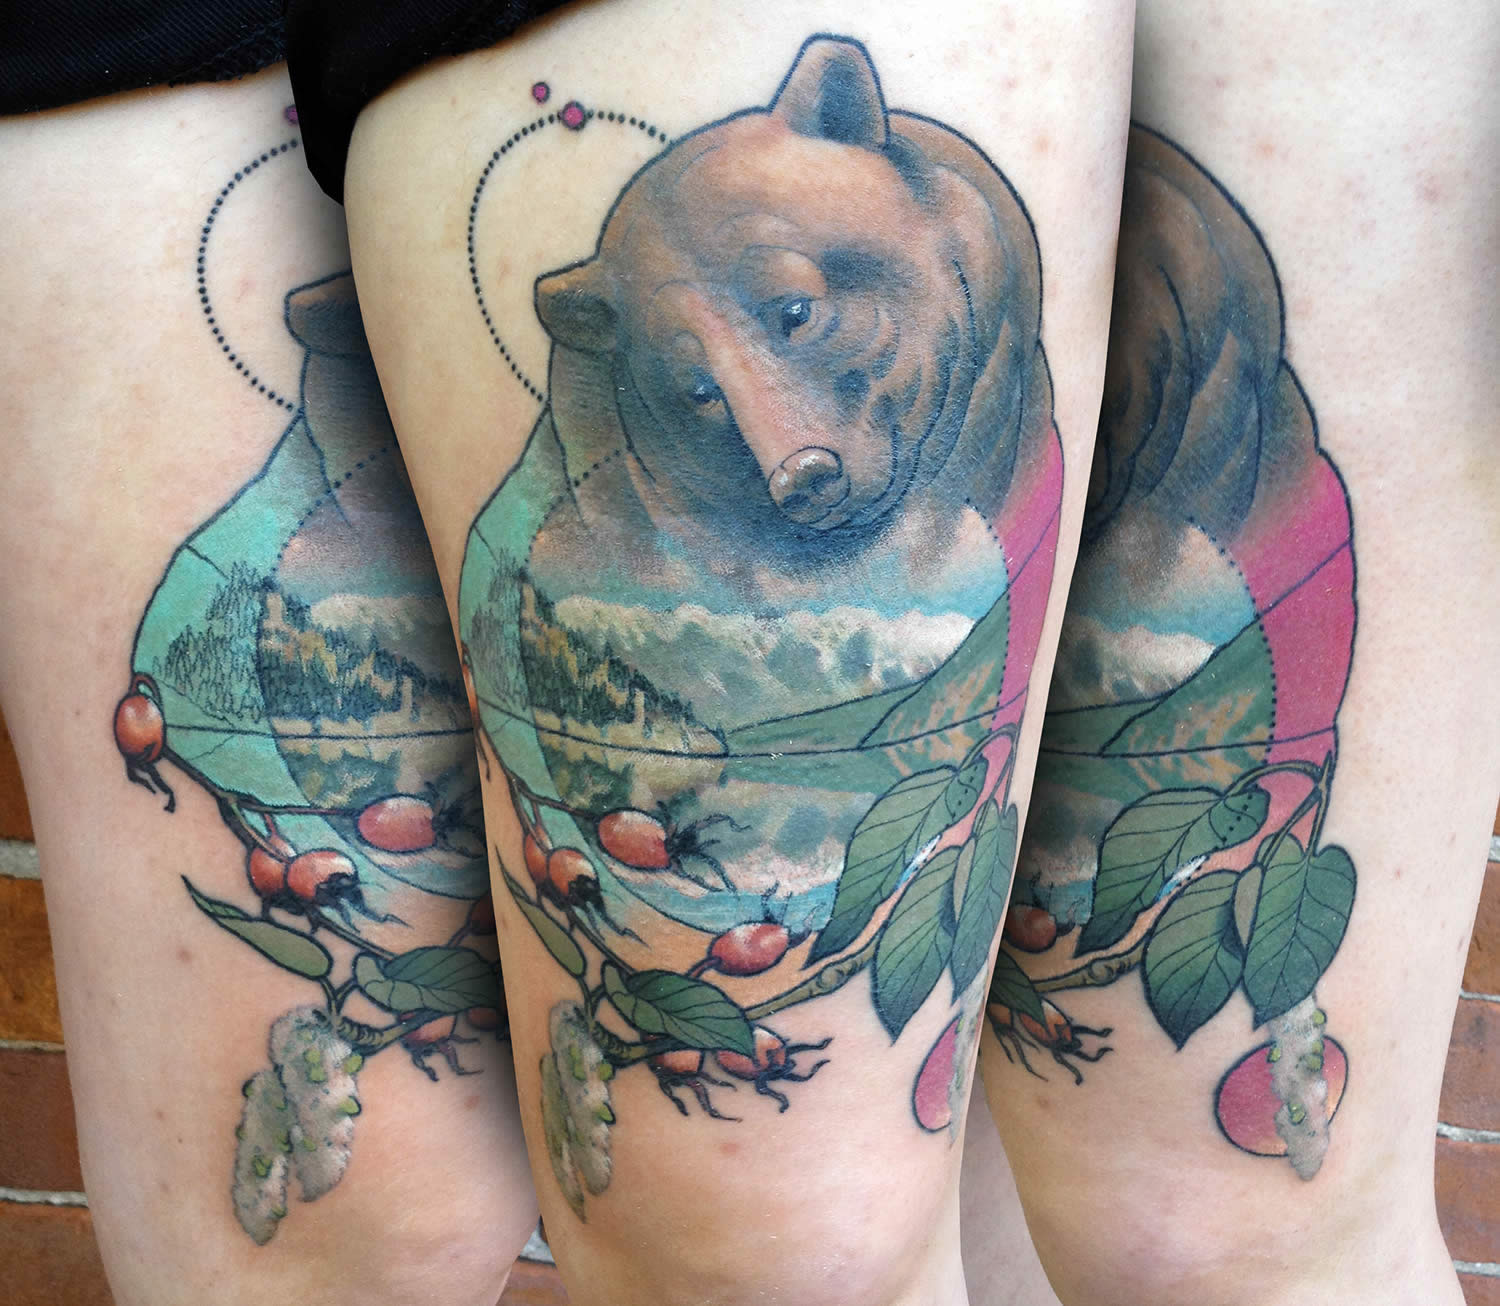 bear with mountain scene tattoo, nature, by cody eich